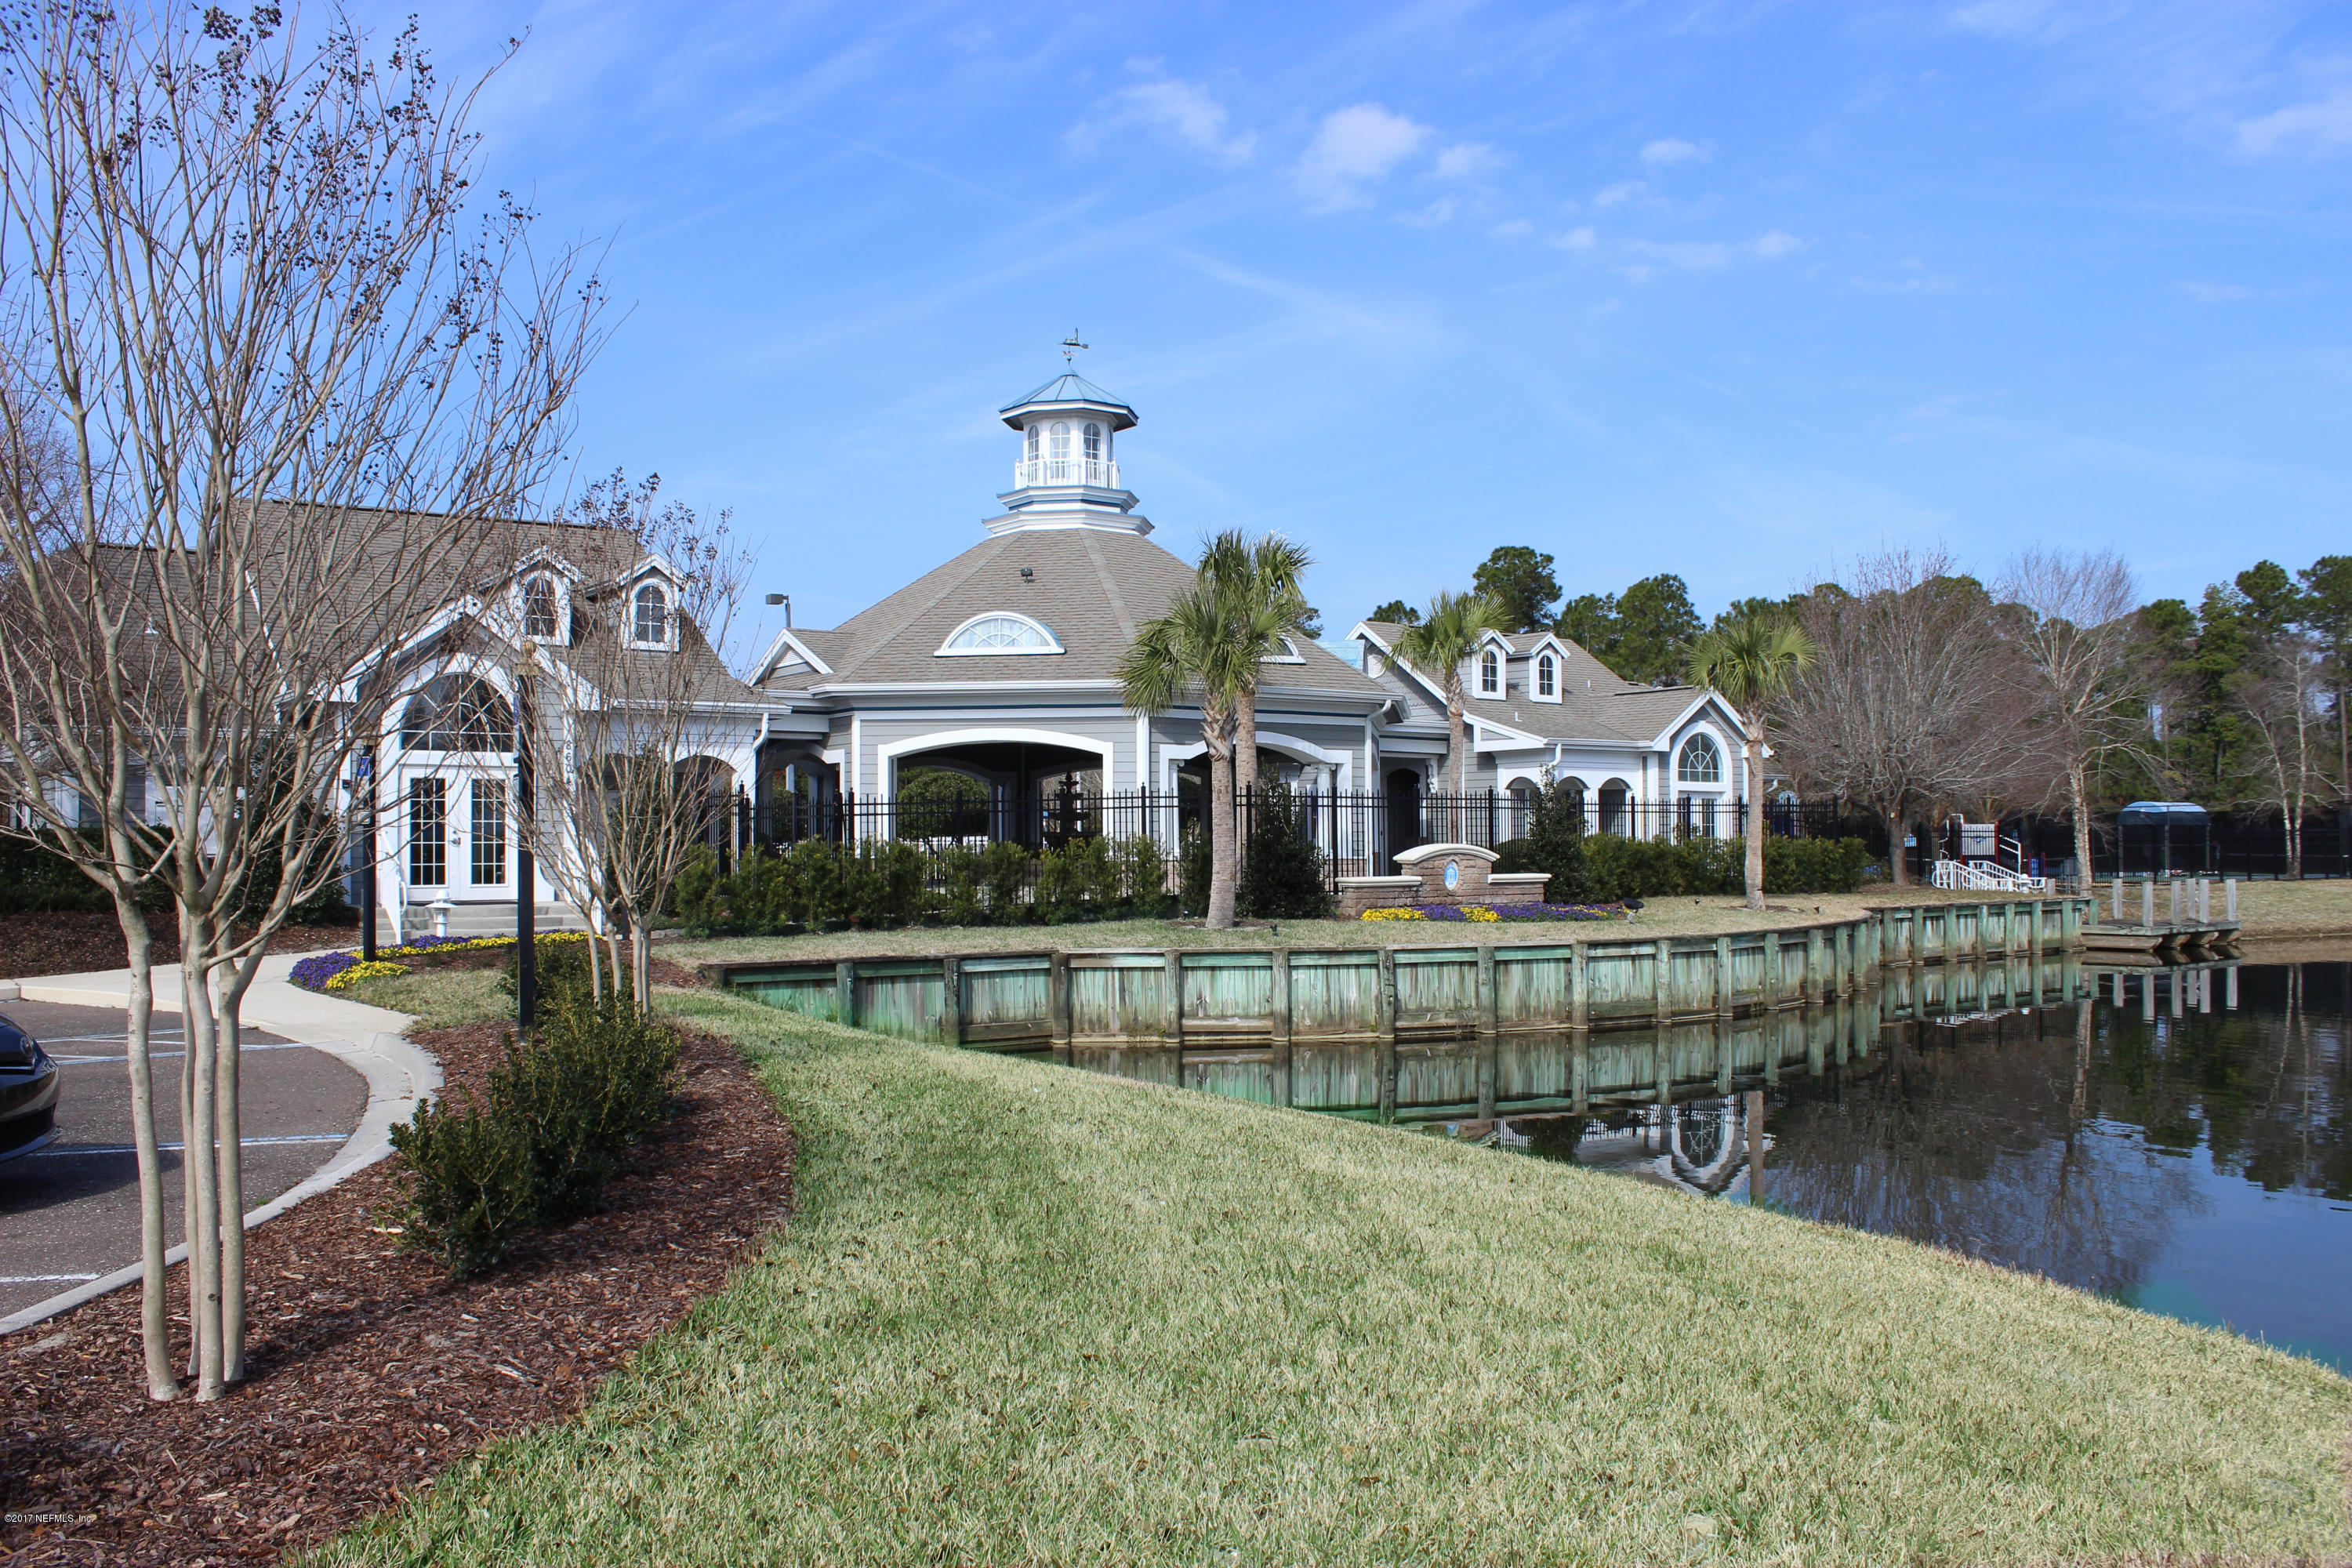 LOT 508 NORTH HAMPTON CLUB, FERNANDINA BEACH, FLORIDA 32034, ,Vacant land,For sale,NORTH HAMPTON CLUB,885102